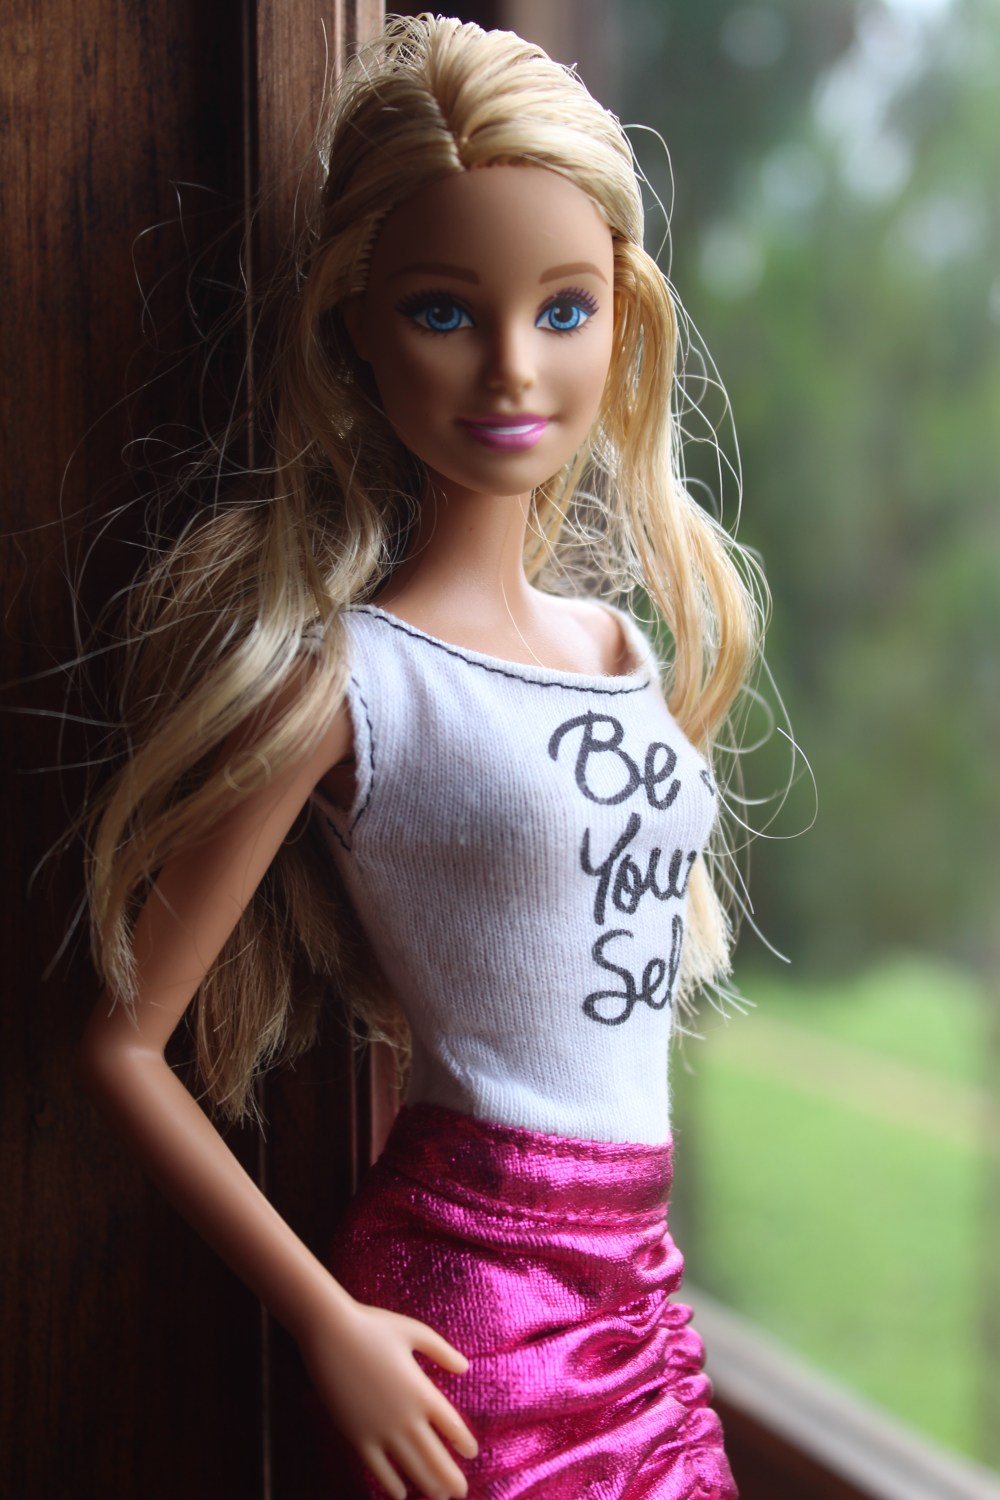 500 barbie doll pictures